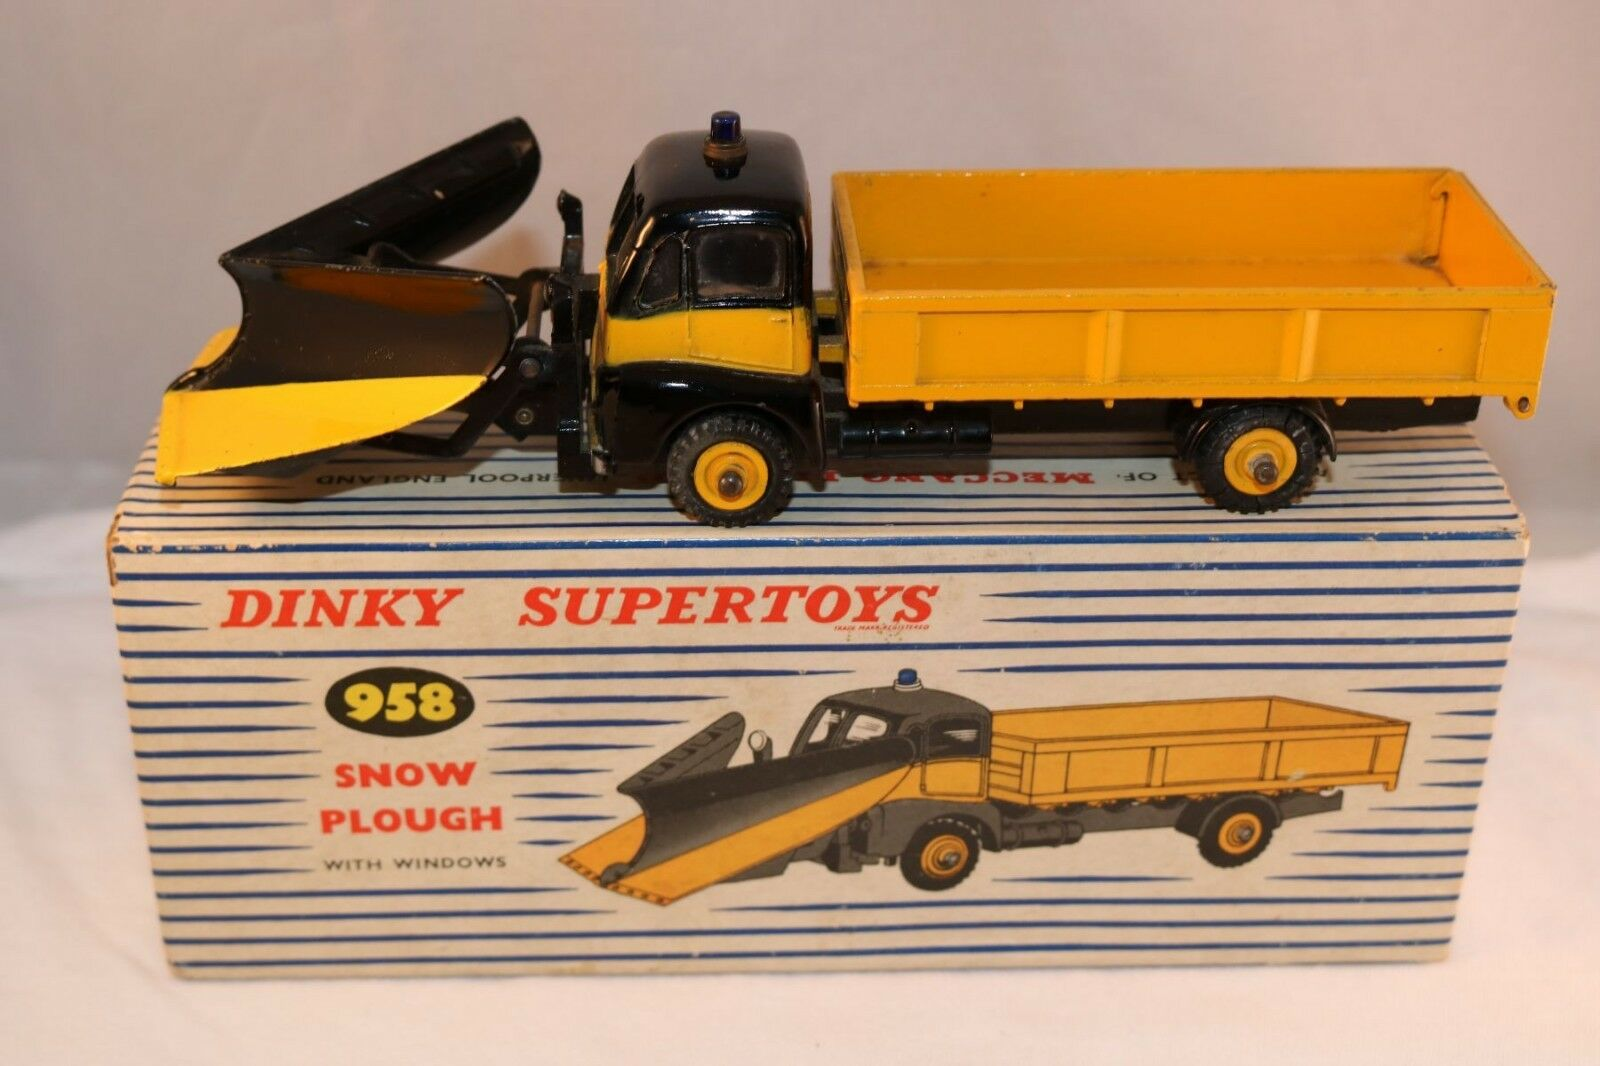 Dinky Toys 958 Snow Plough near mint in box all original condition